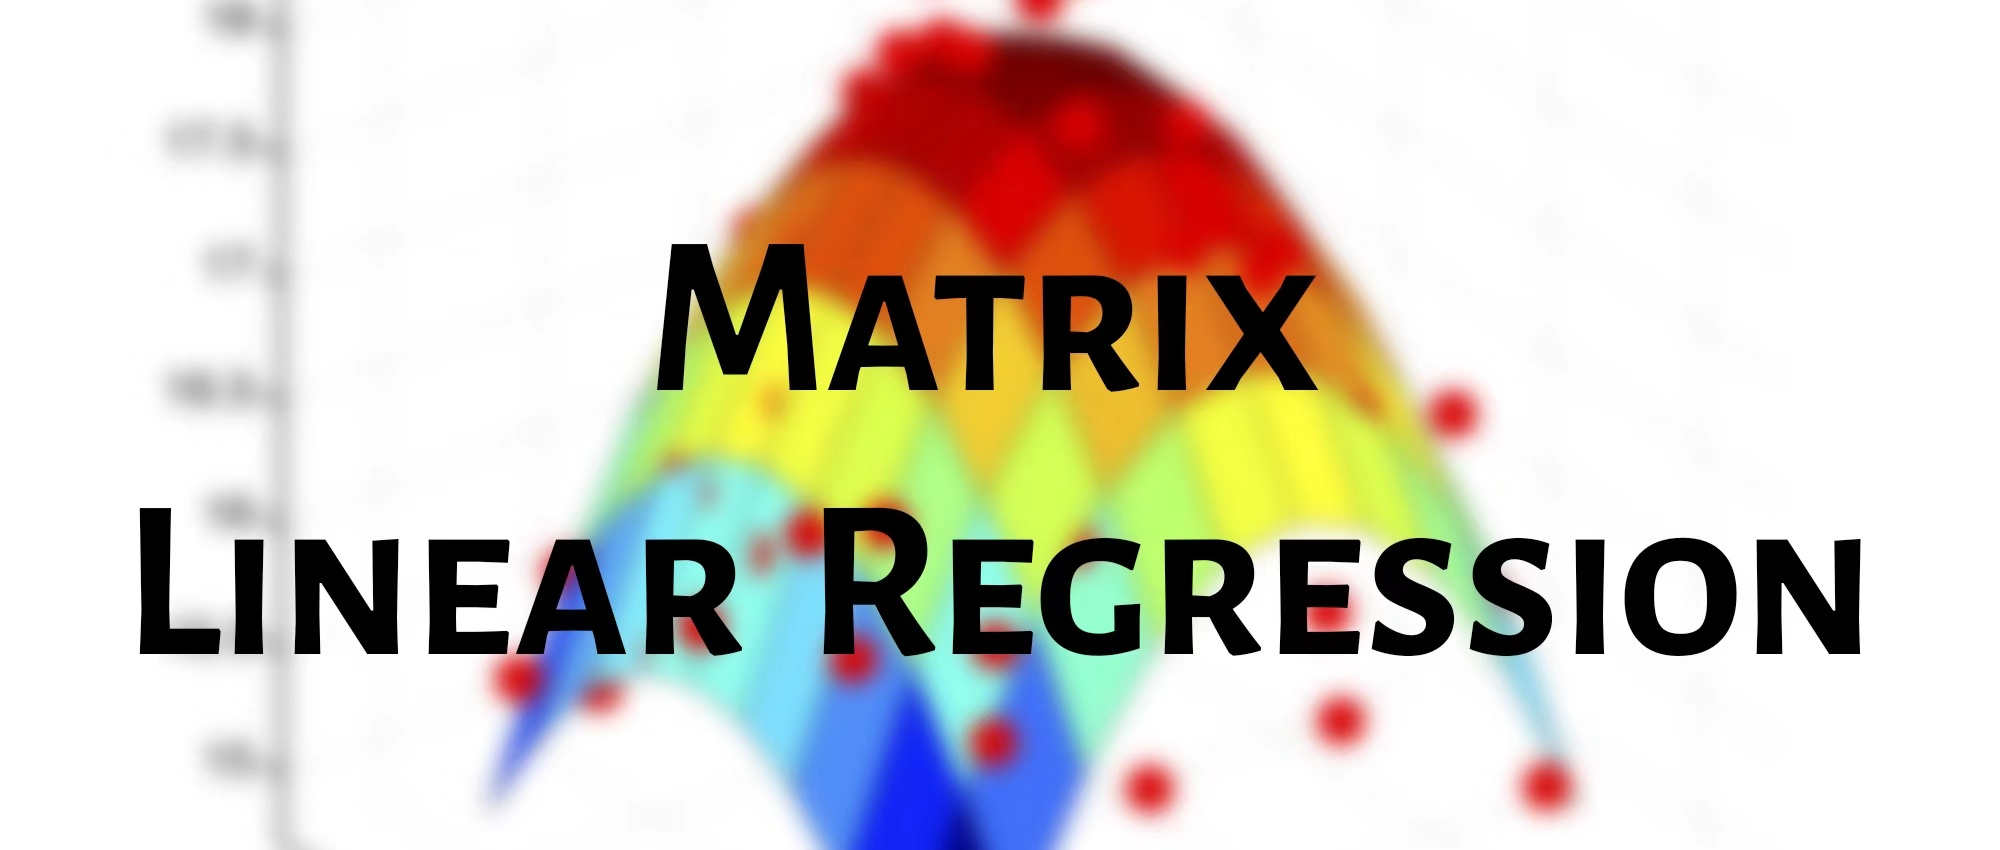 Matrix Linear Regression